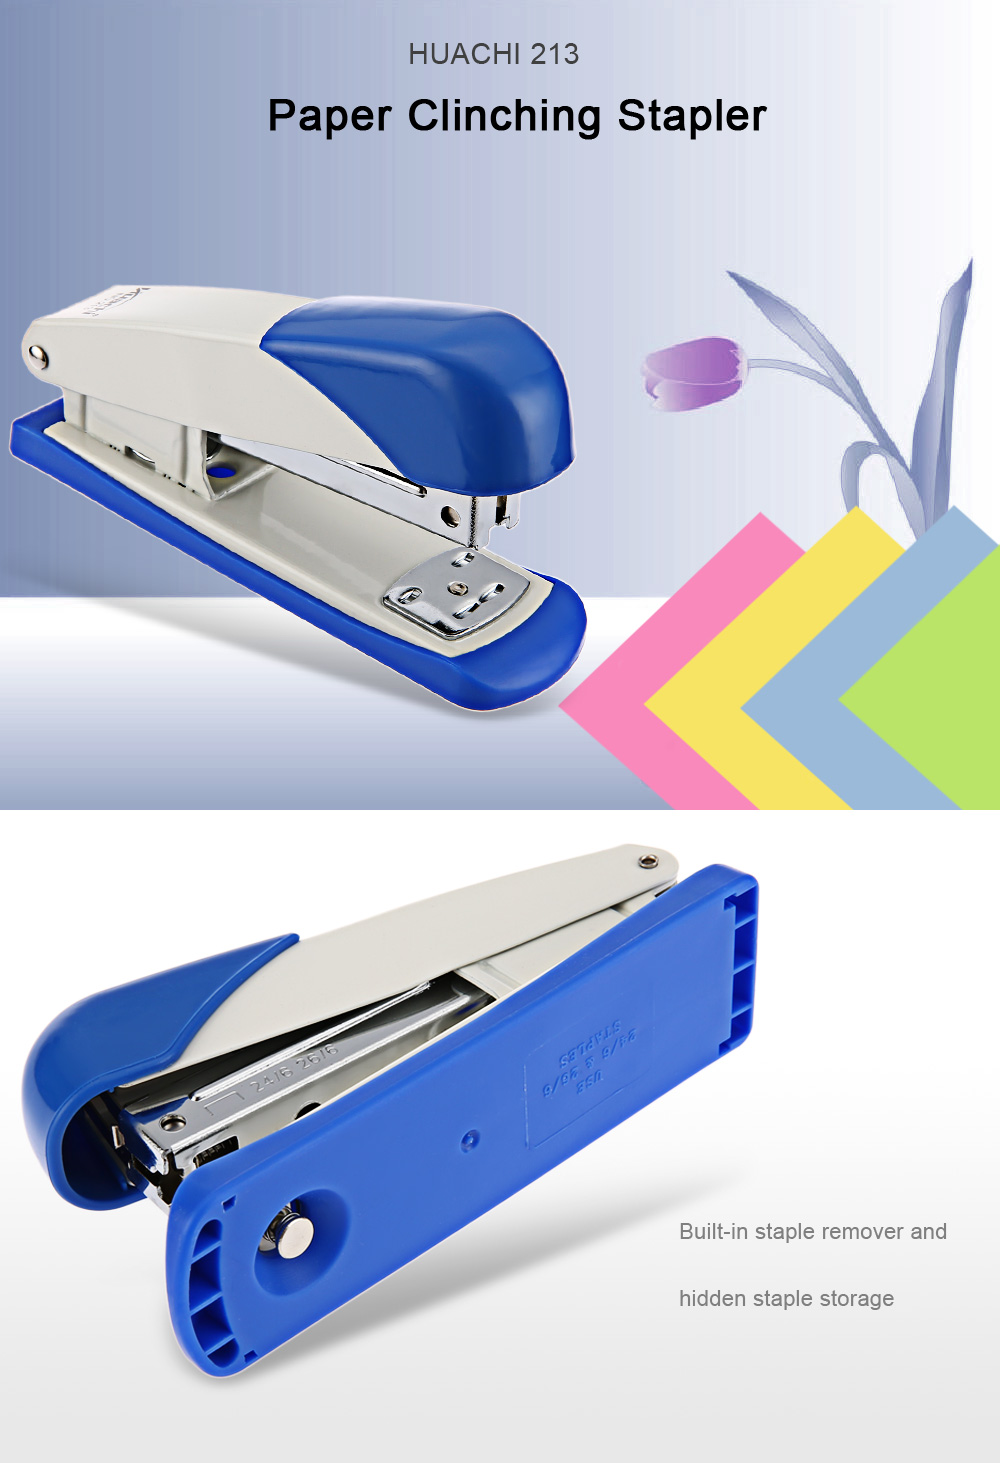 HUACHI 213 Office Supplies Paper Clinching Stapler